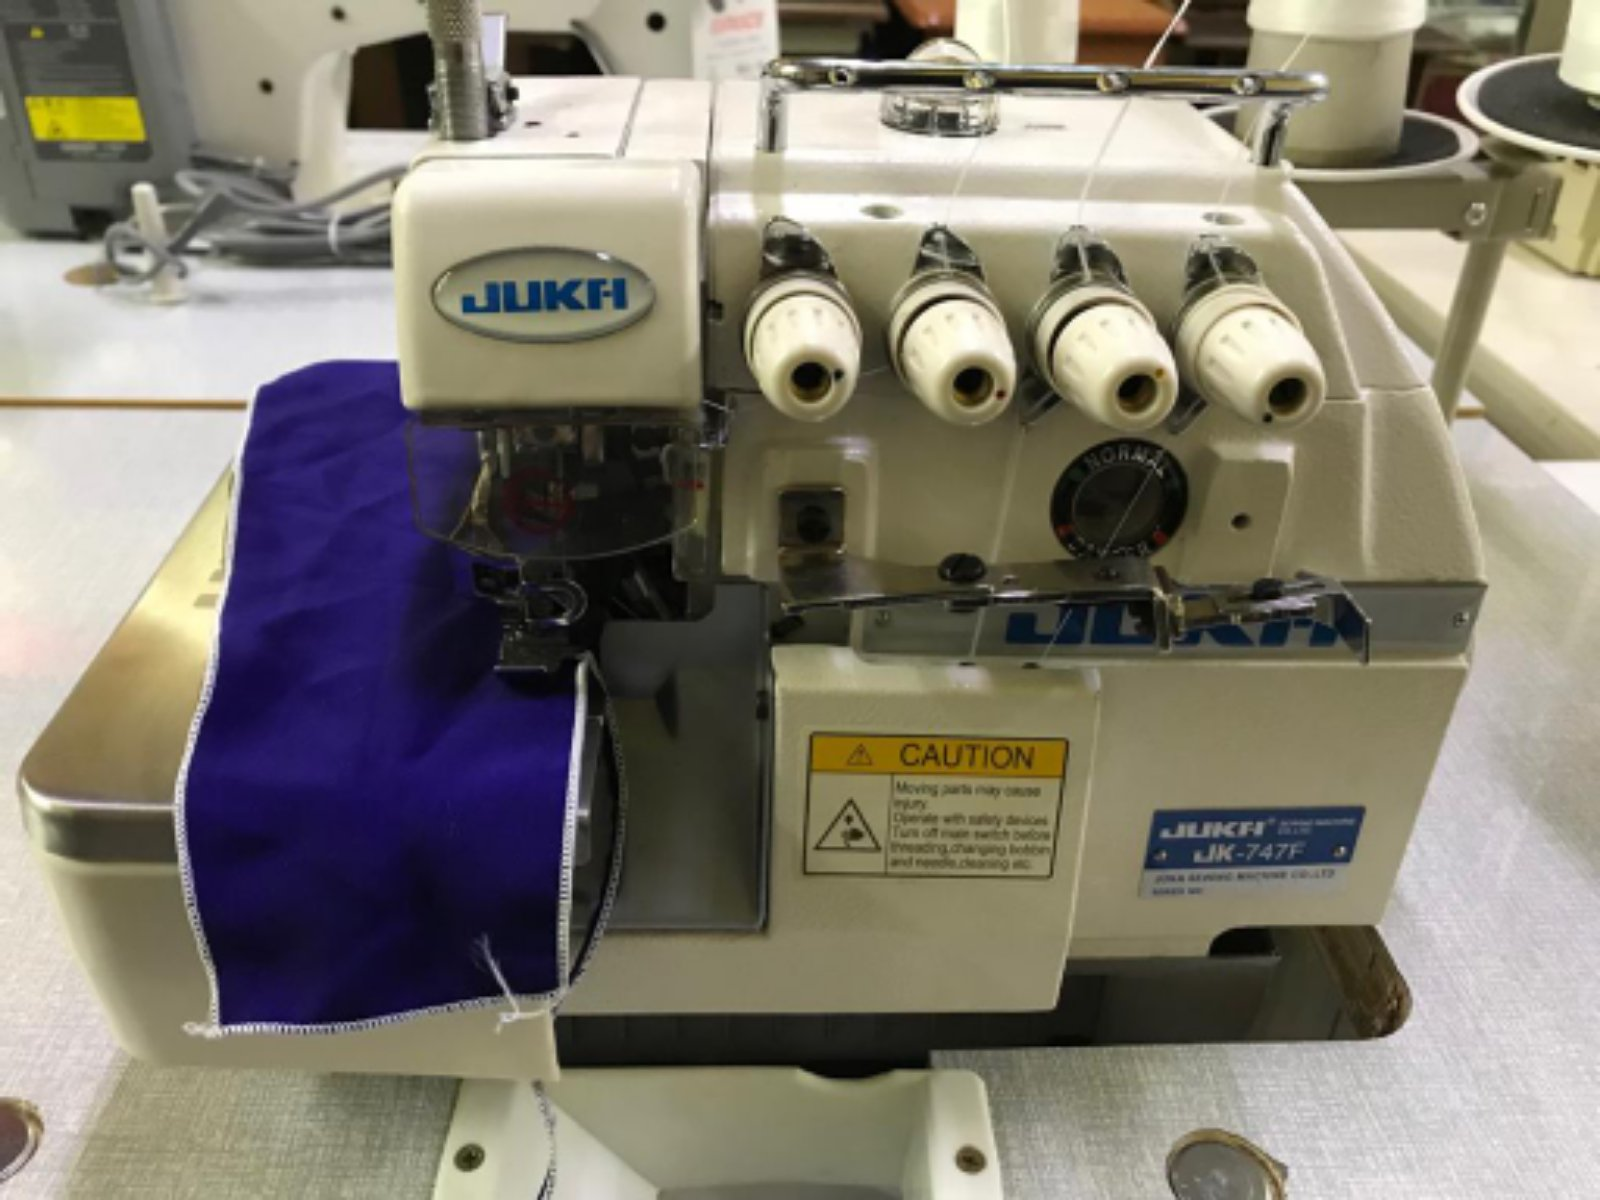 NewJuka Overlock Industrial Sewing Machine